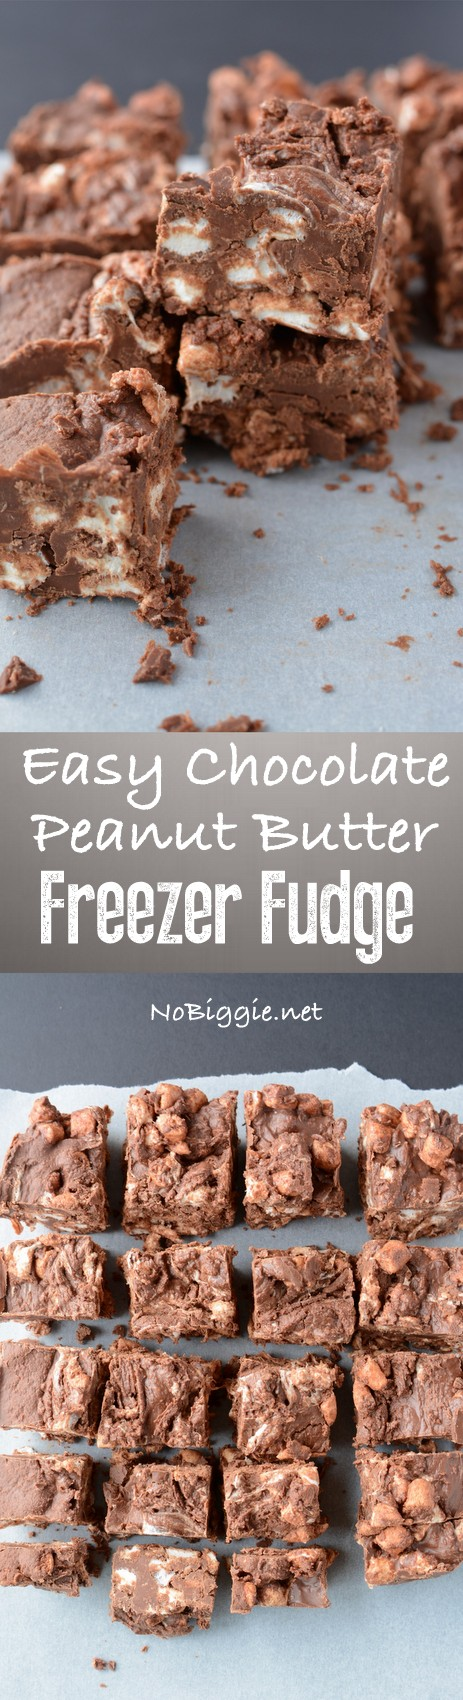 Easy Chocolate Peanut Butter Freezer Fudge | NoBiggie.net